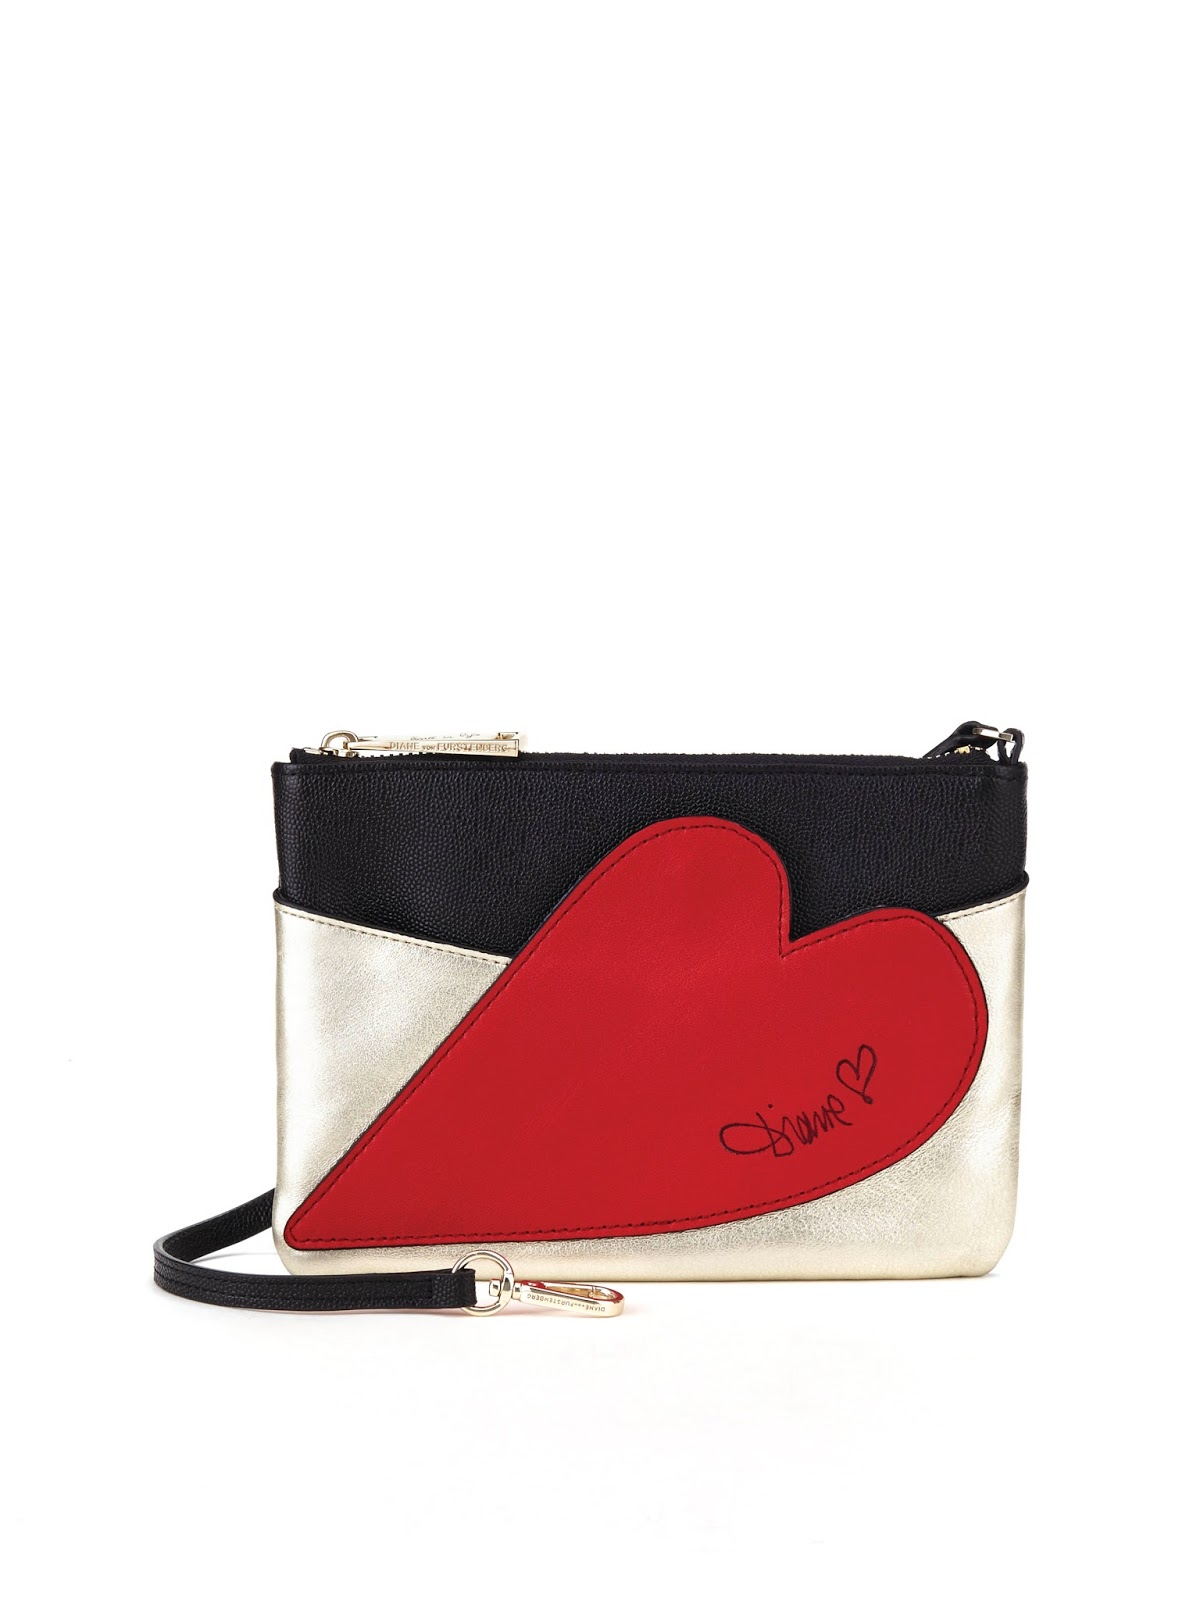 DVF Valentine's Day Collection